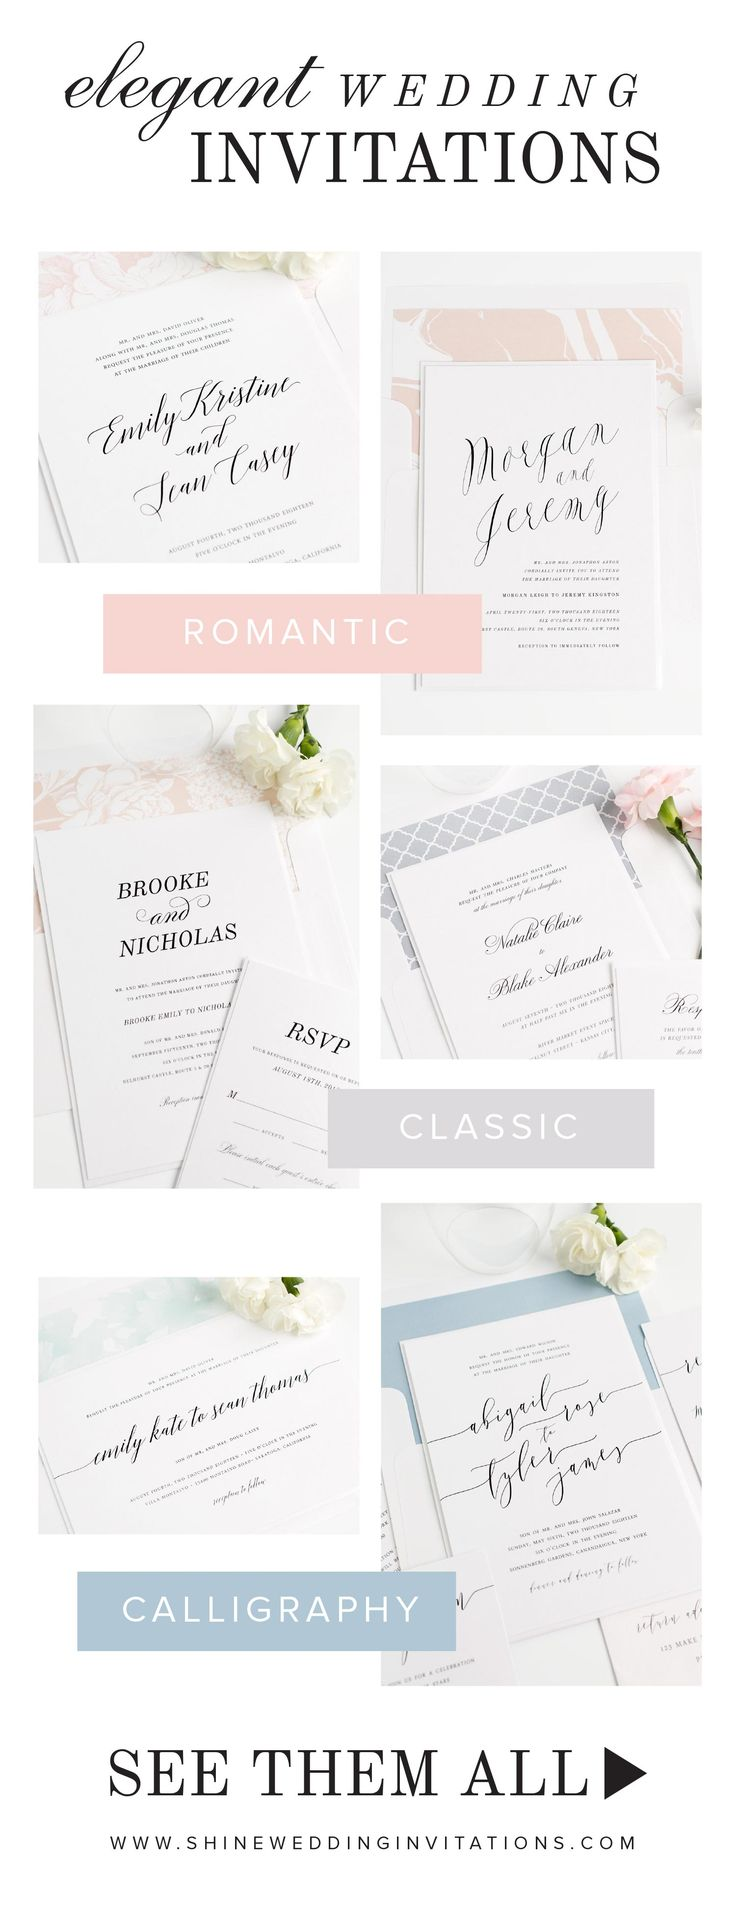 Need wedding invitations?  Click to shop over 100 gorgeous designs for every style of wedding, plus stunning envelope liners that can be personalized in your choice of color and pattern to create the perfect look for your stationery!  Complimentary sample sets available.